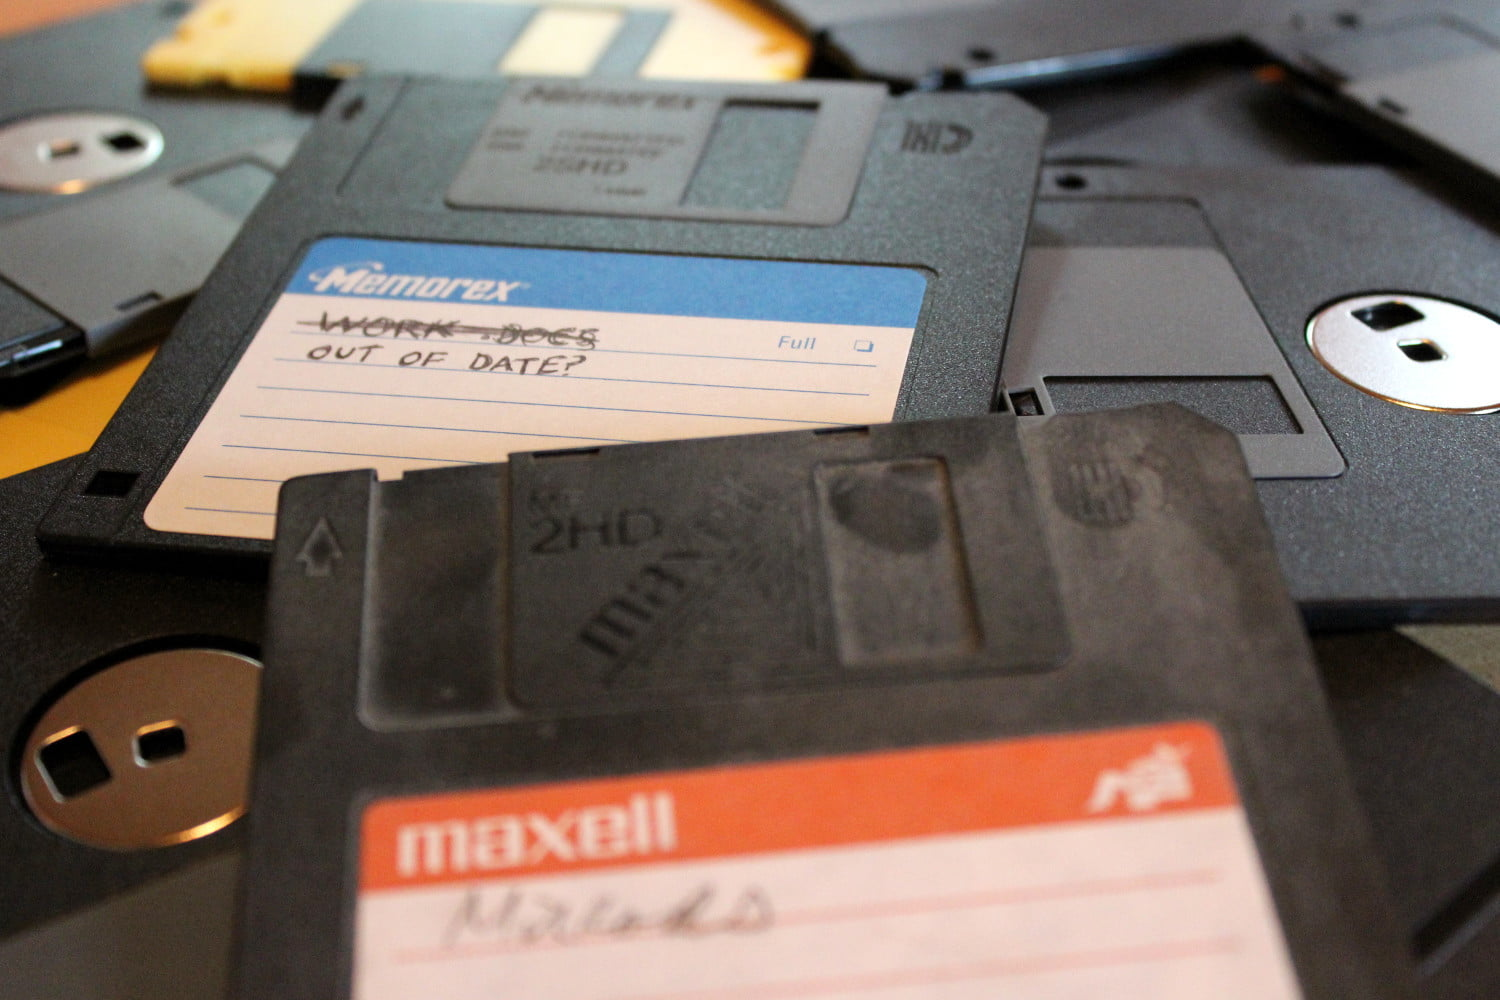 Walmart Call In Number >> Why The Floppy Disk Is Still Used Today | Digital Trends